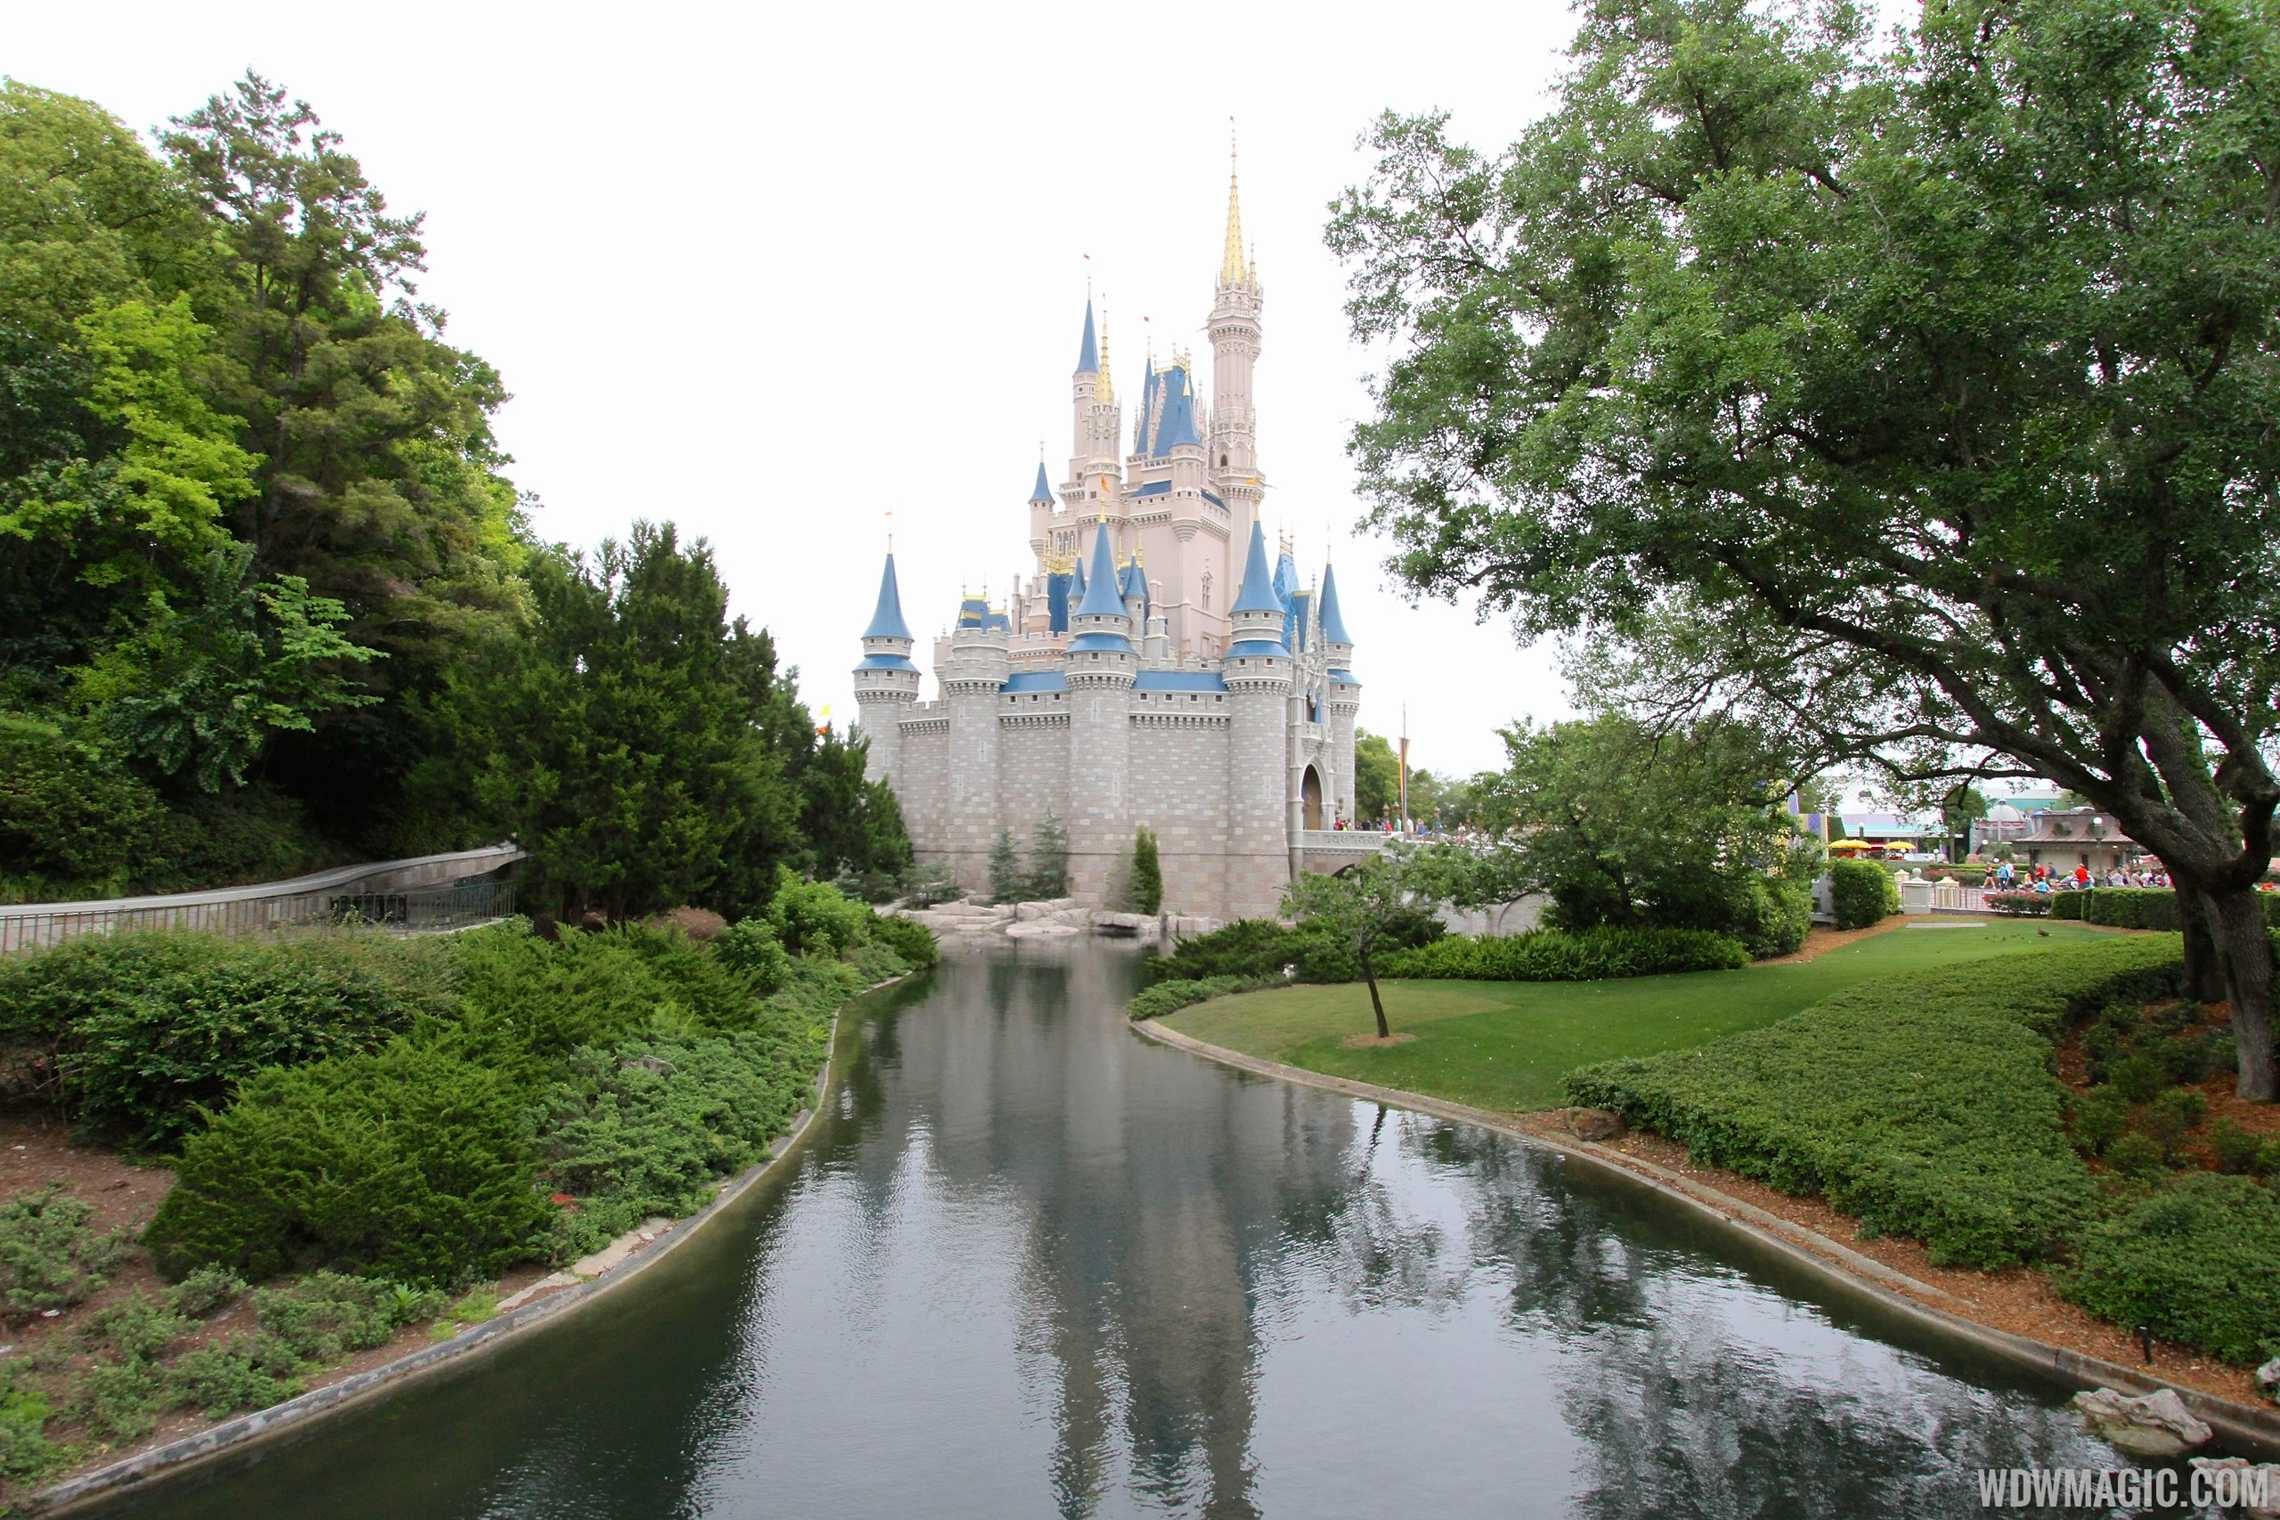 Water back in the Magic Kingdom's waterways